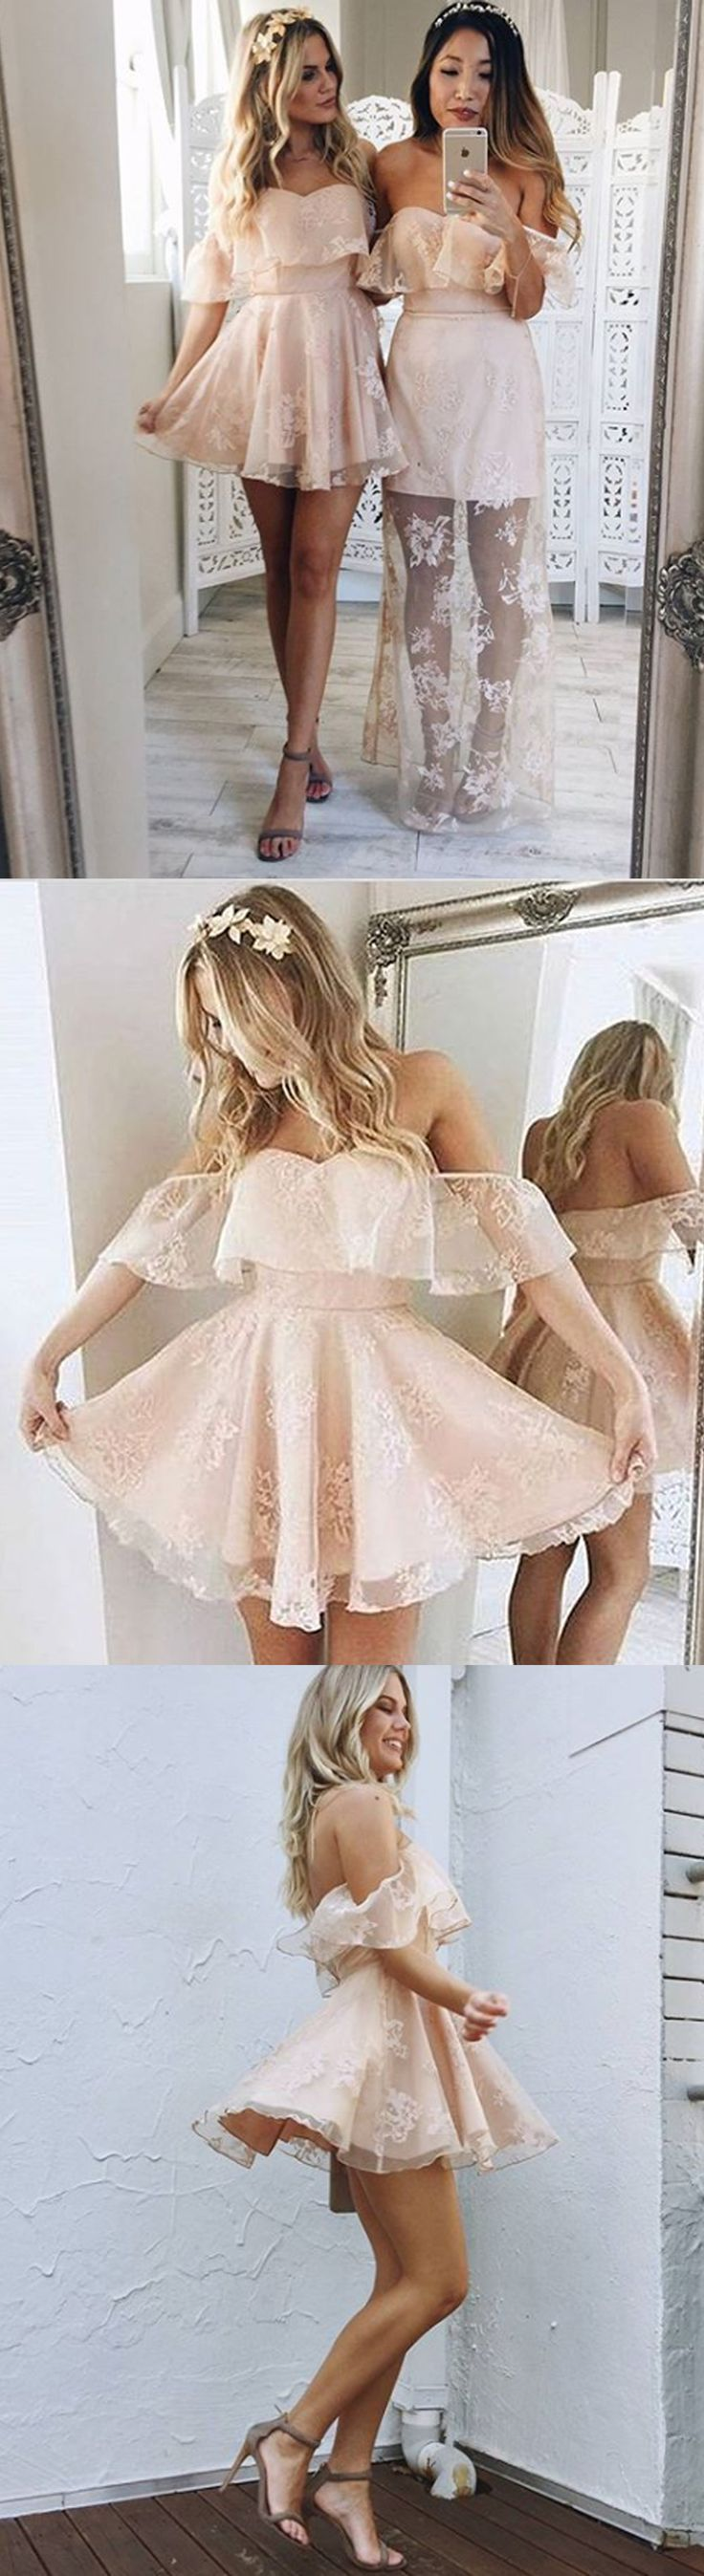 A-Line Homecoming Dresses,Off-the-Shoulder Homecoming Dresses,Short Homecoming Dresses,Pearl Pink Homecoming Dresses,Organza Homecoming Dresses,Appliques Homecoming Dresses,Homecoming Dresses 2017,Graduation Dresses,Dresses For Teens